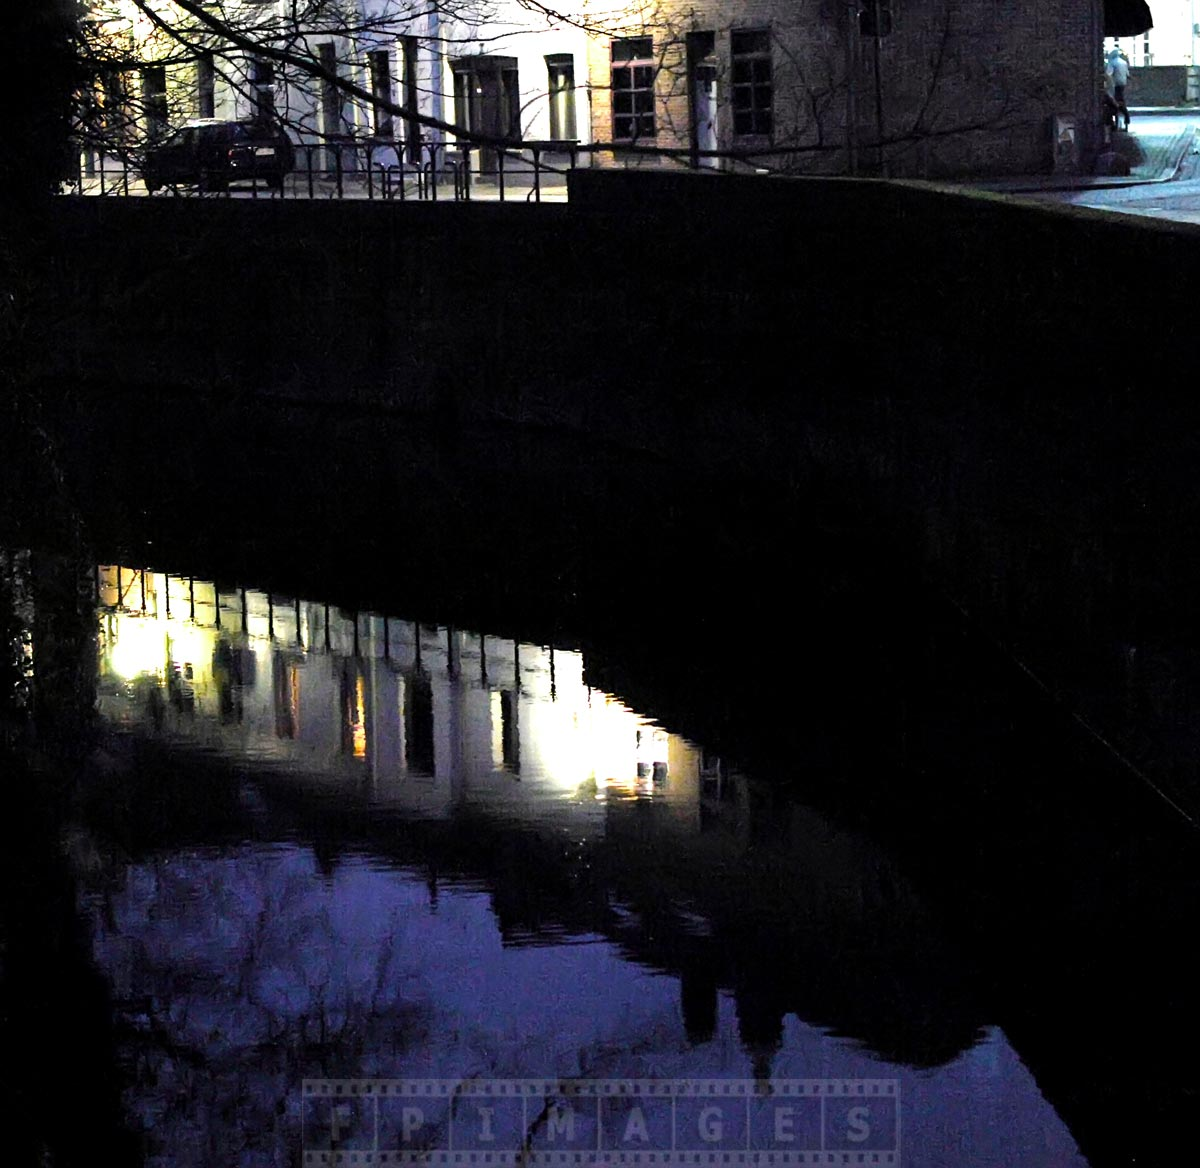 Bruges canal at night is quiet and peaceful